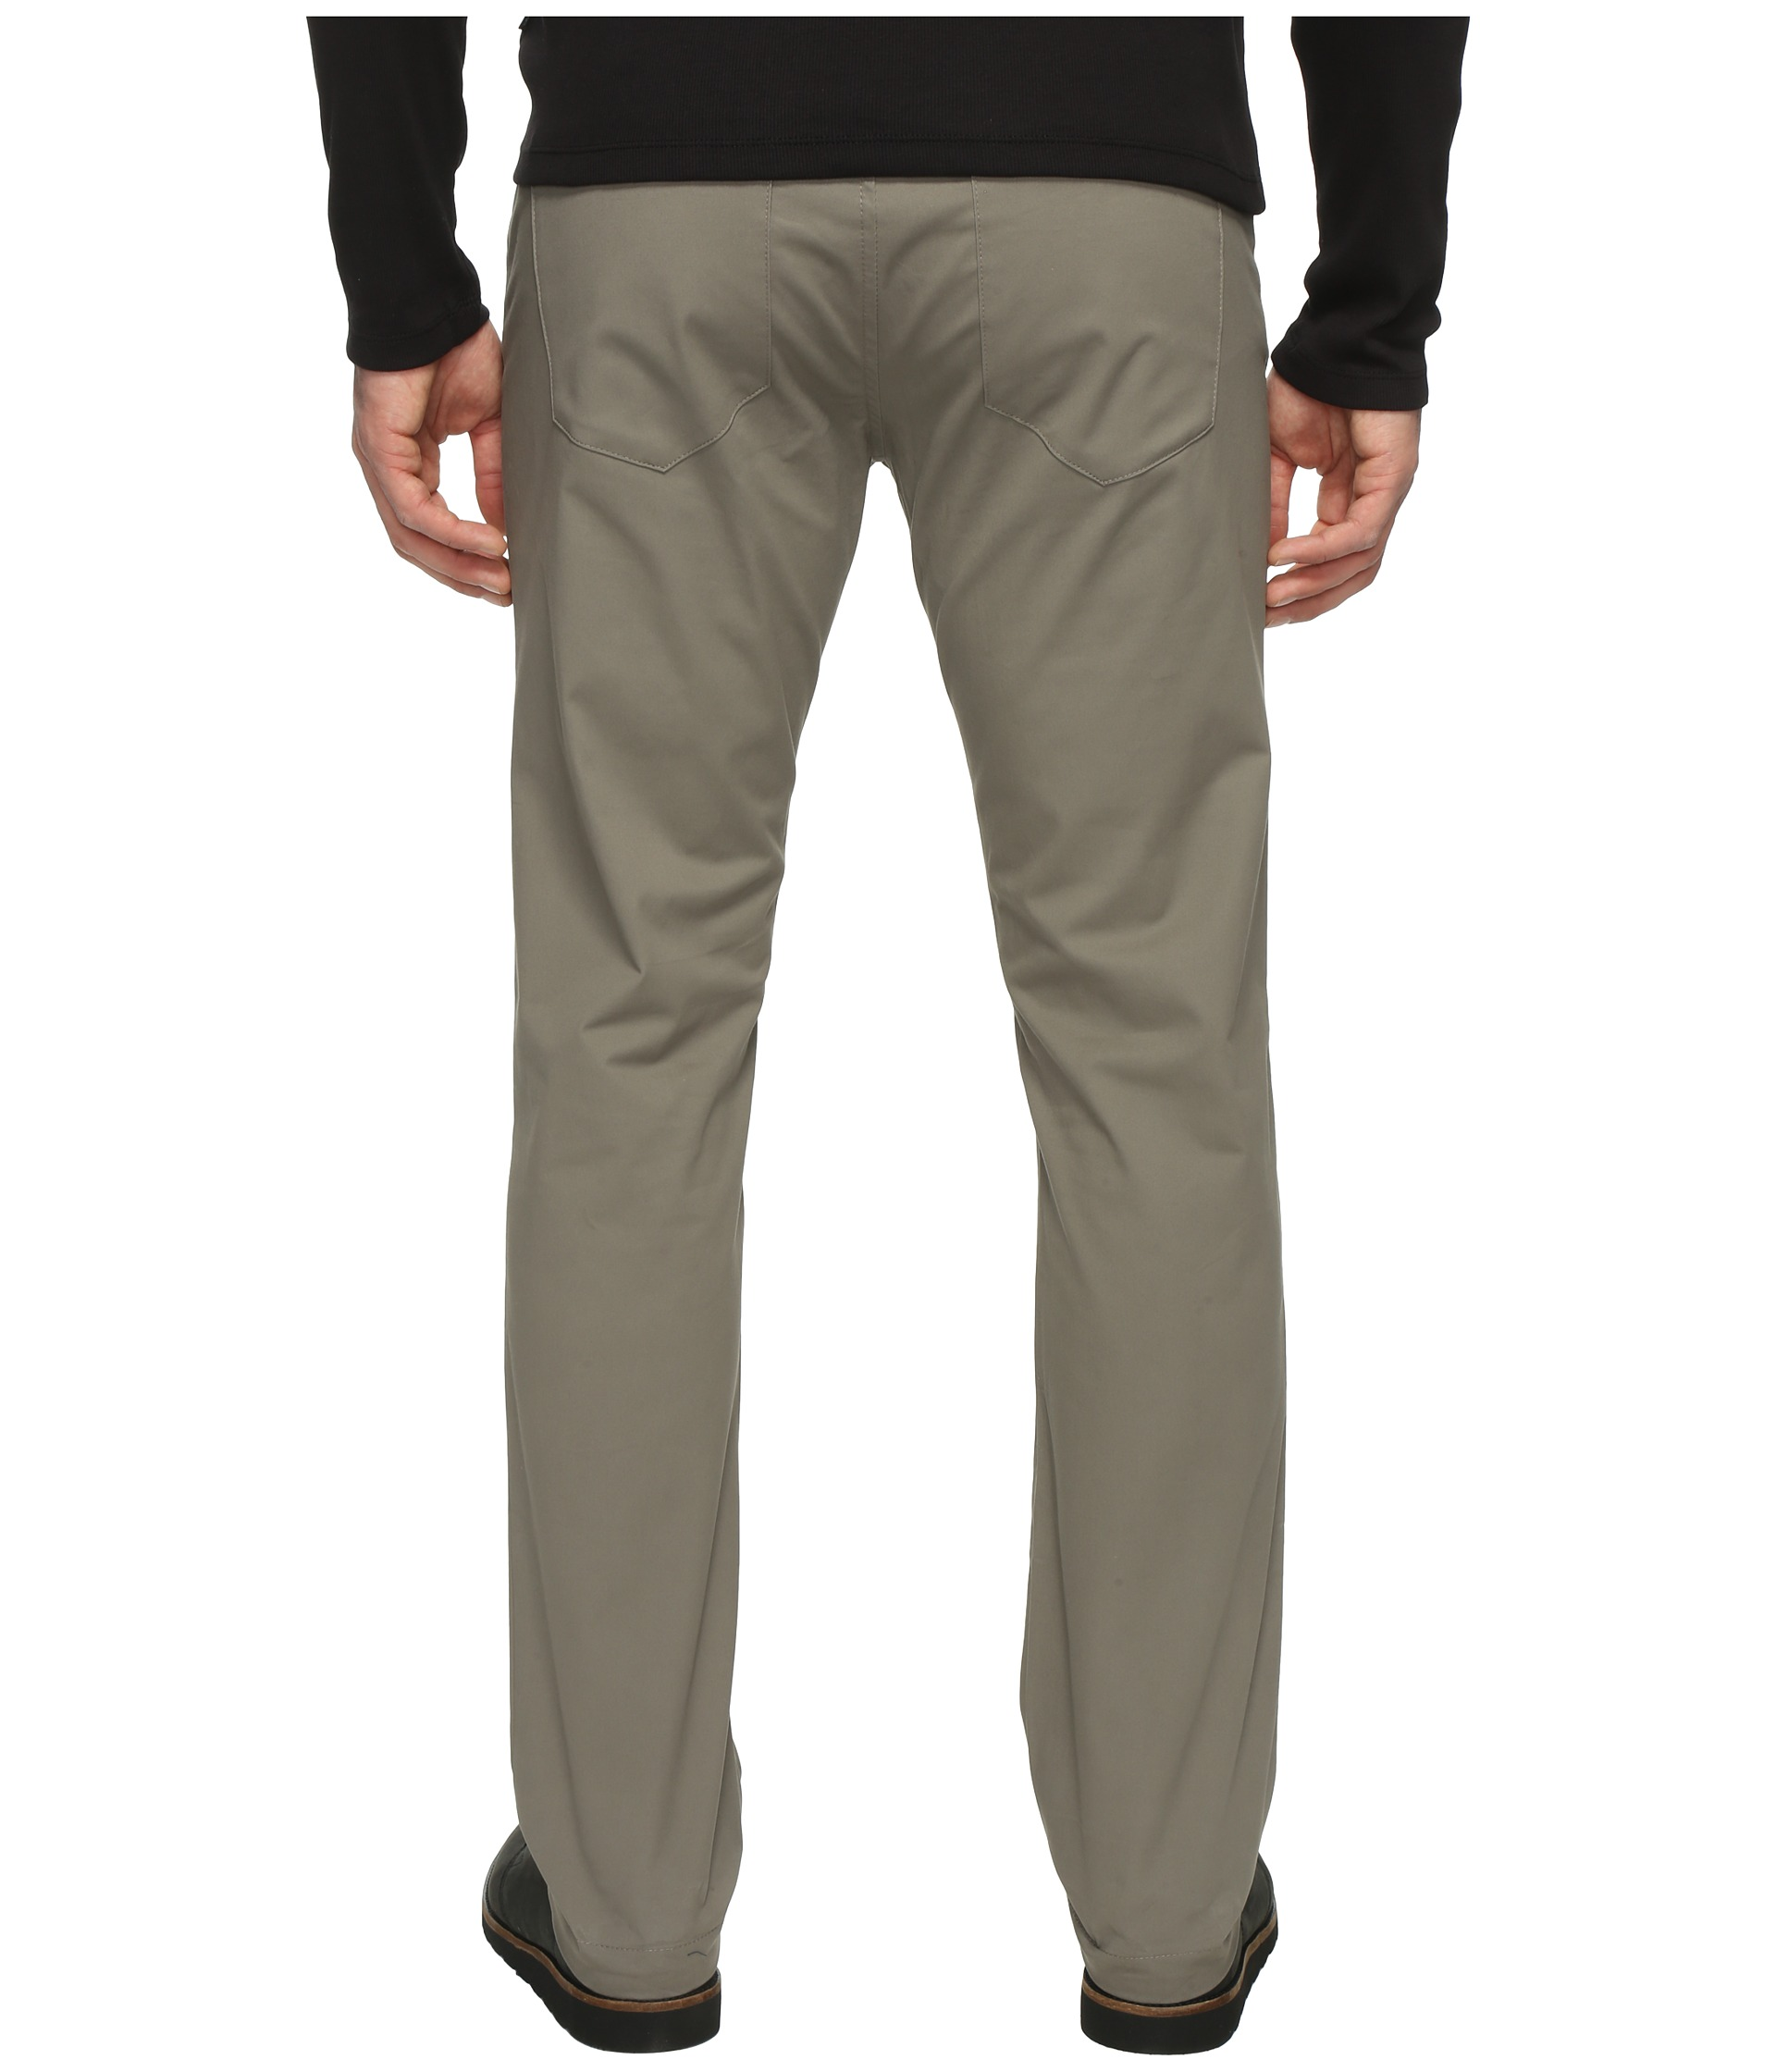 Shop metrostyle for our Sateen Pant. Browse our online catalog for more unique & bold clothing, shoes & accessories to complete your look.